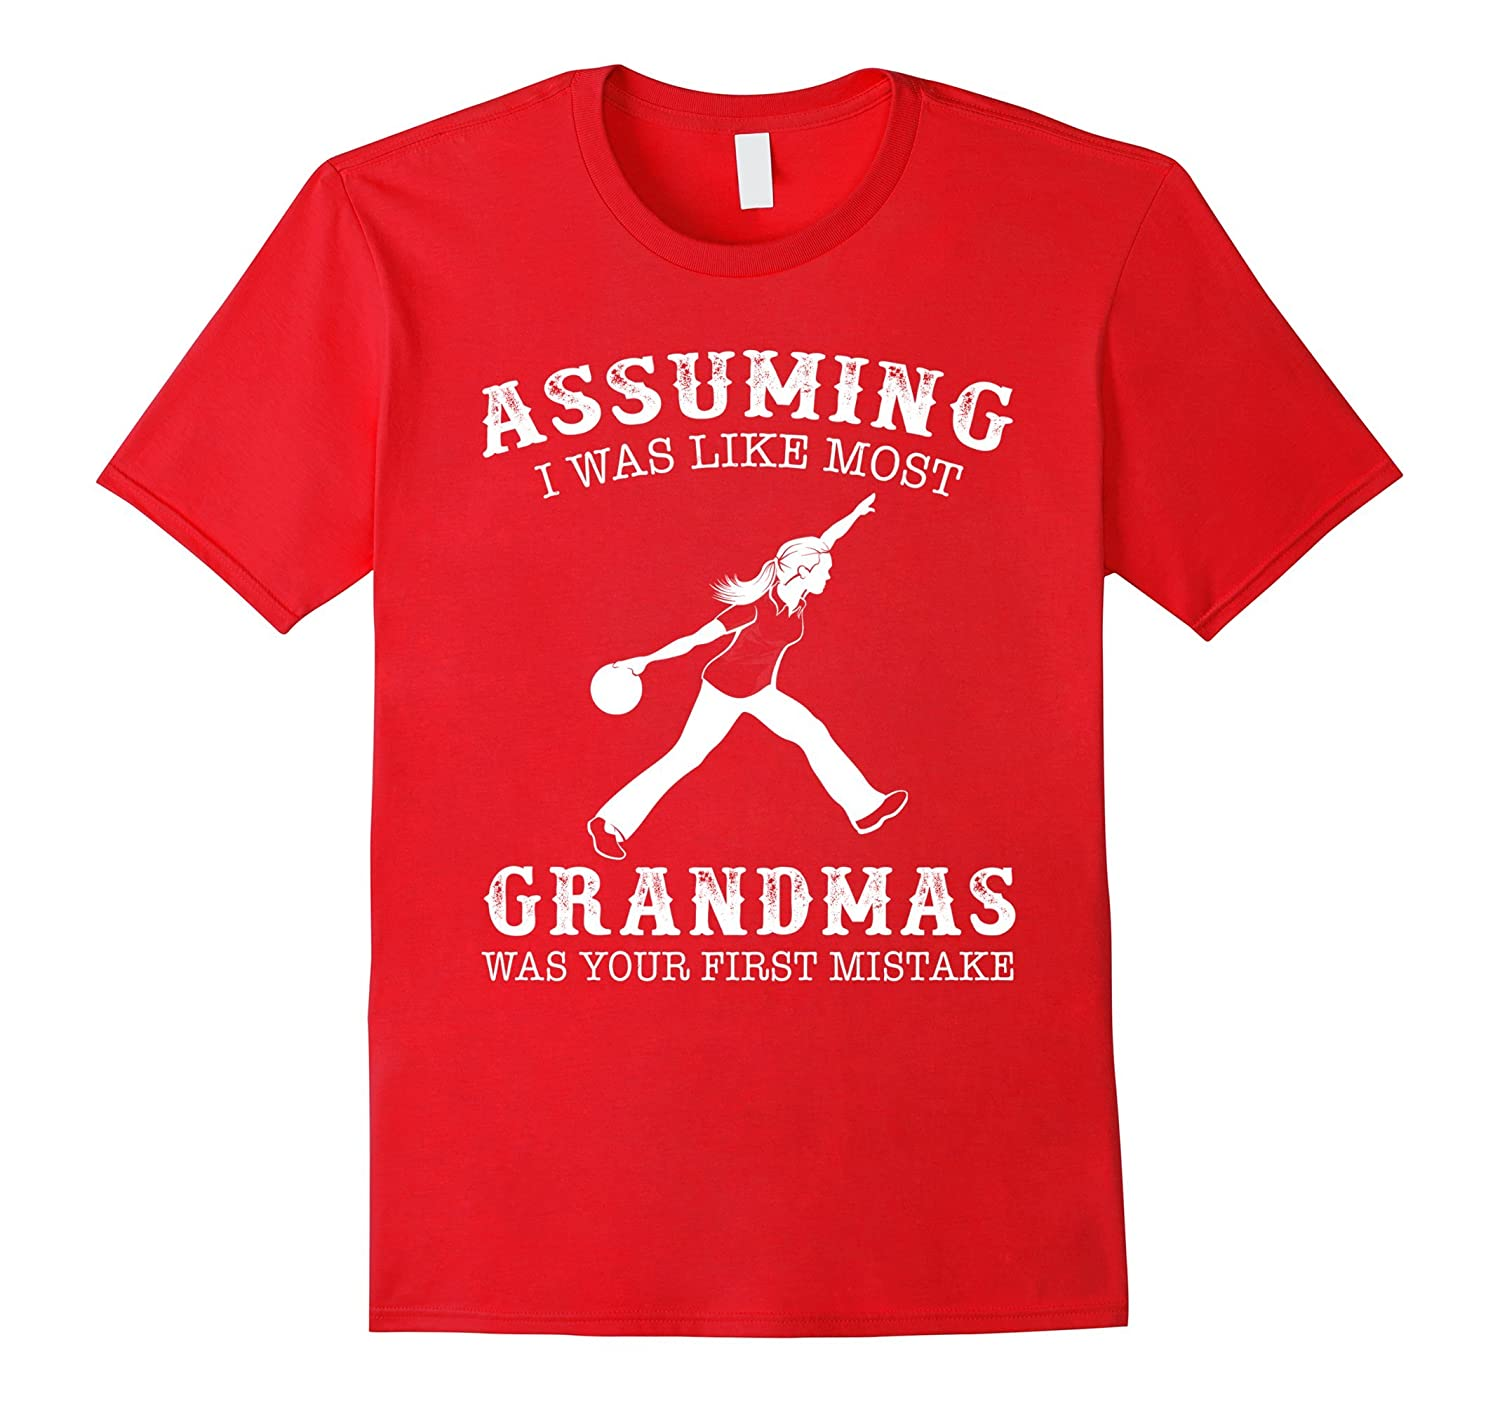 Assuming i was like most grandmas first mistake - Bowling-TH